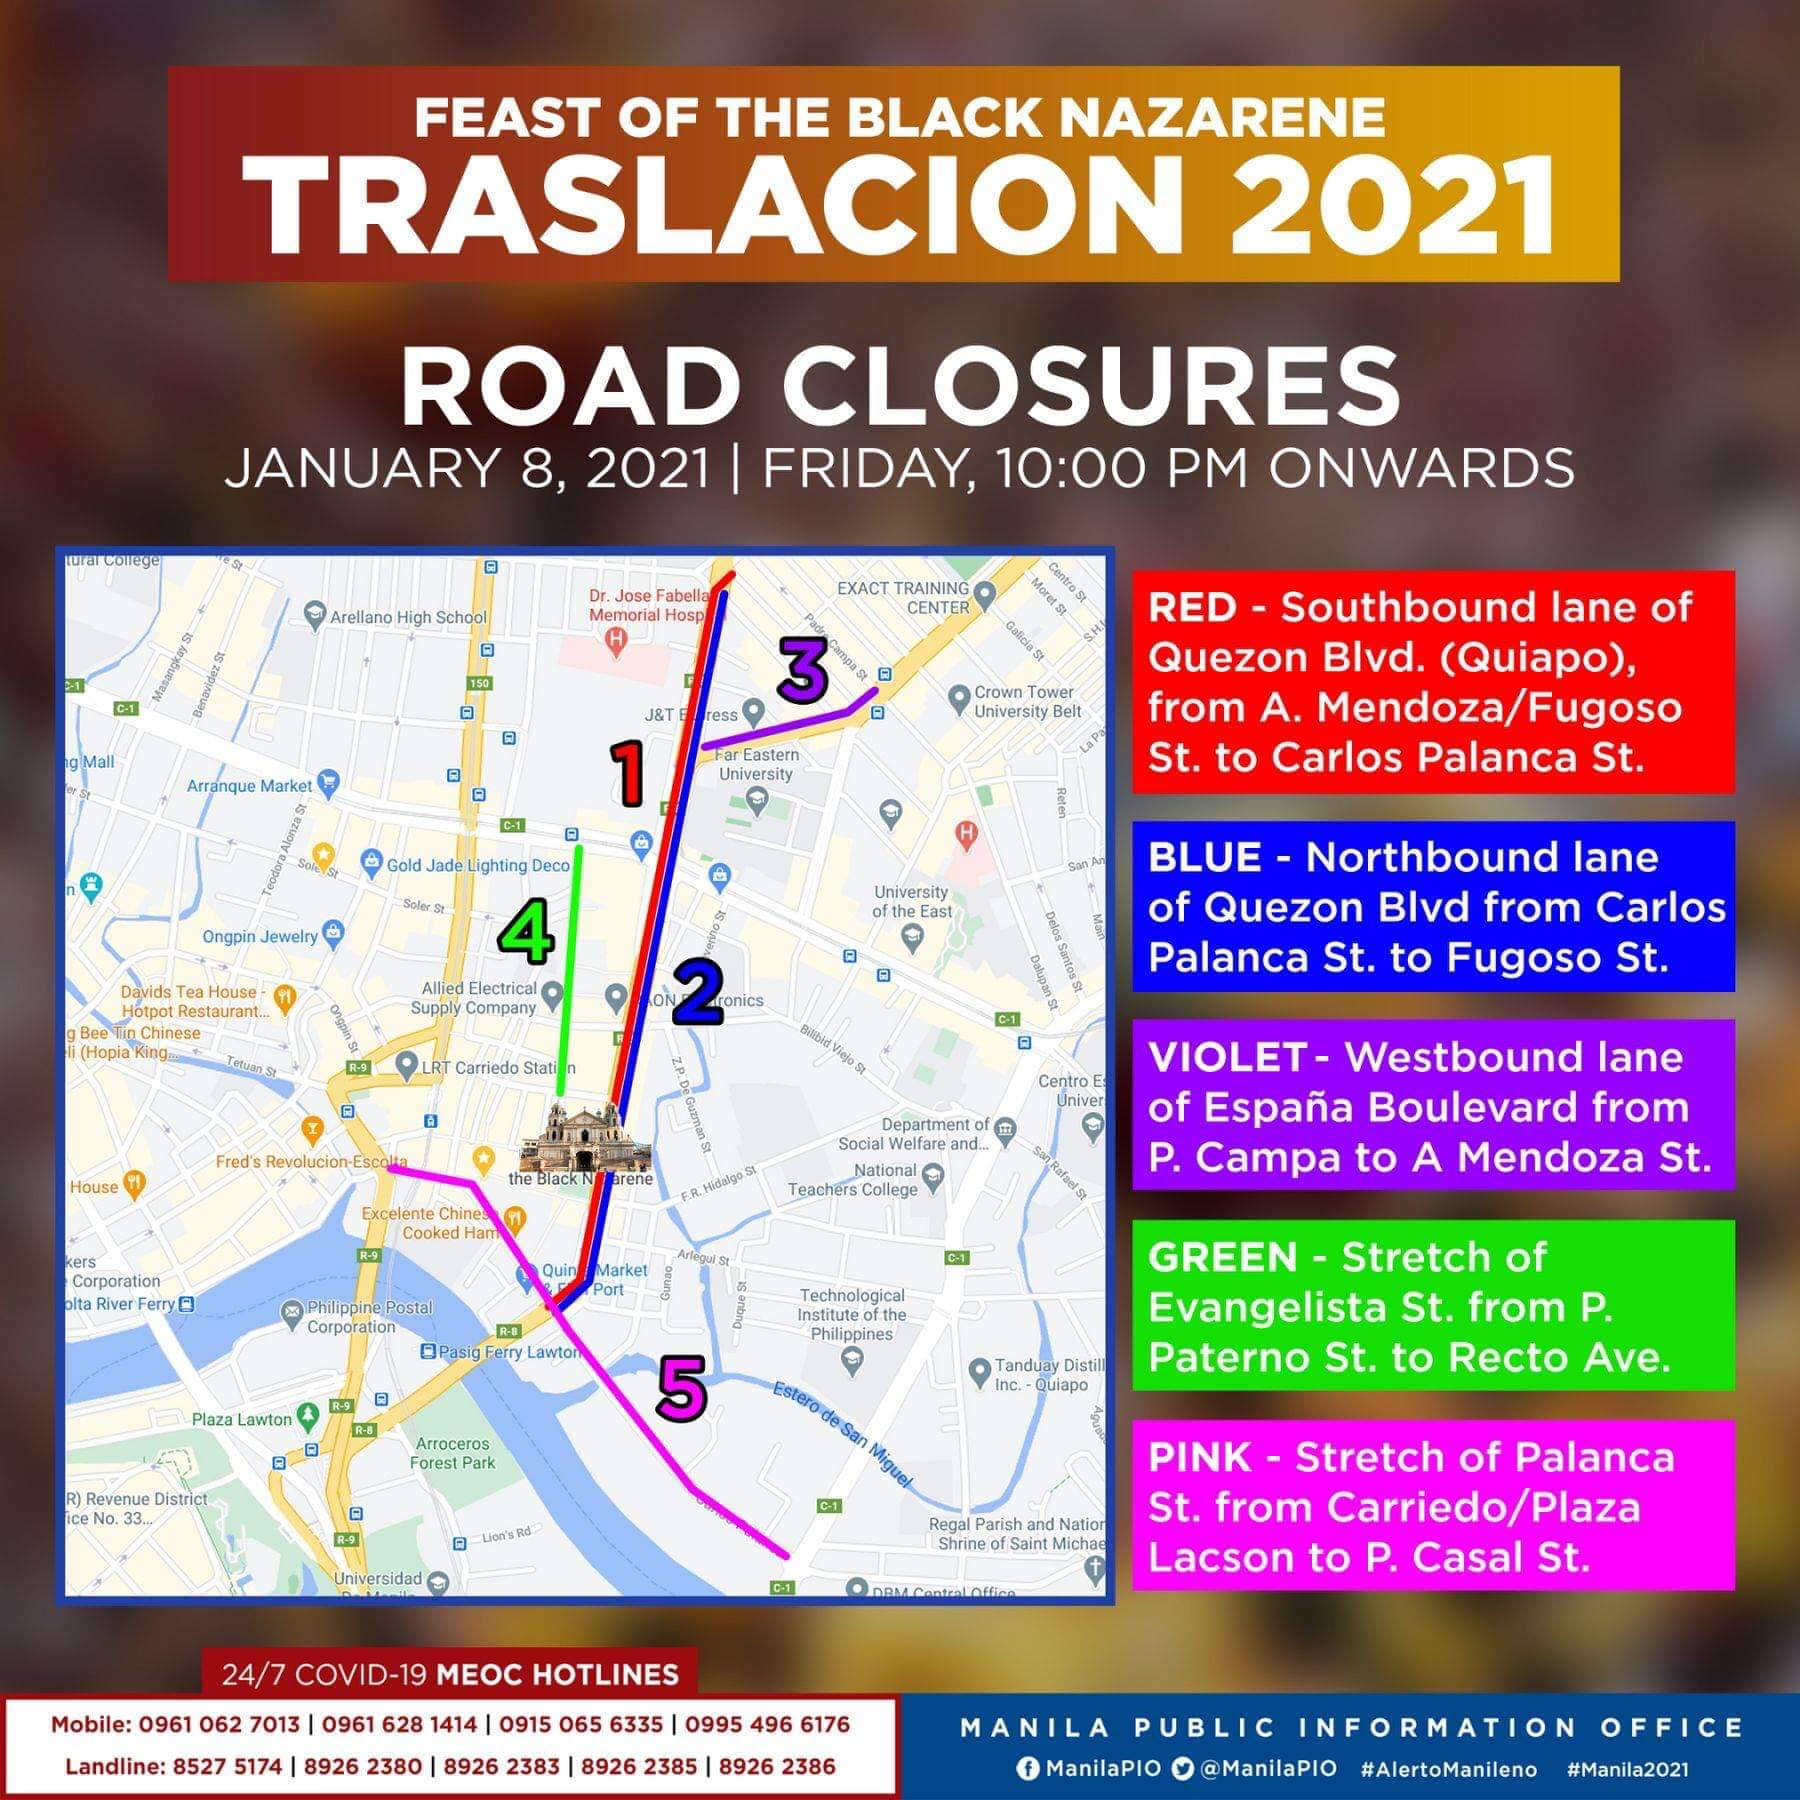 Traslacion Road closures on January 8, 2021 (10 pm onwards)